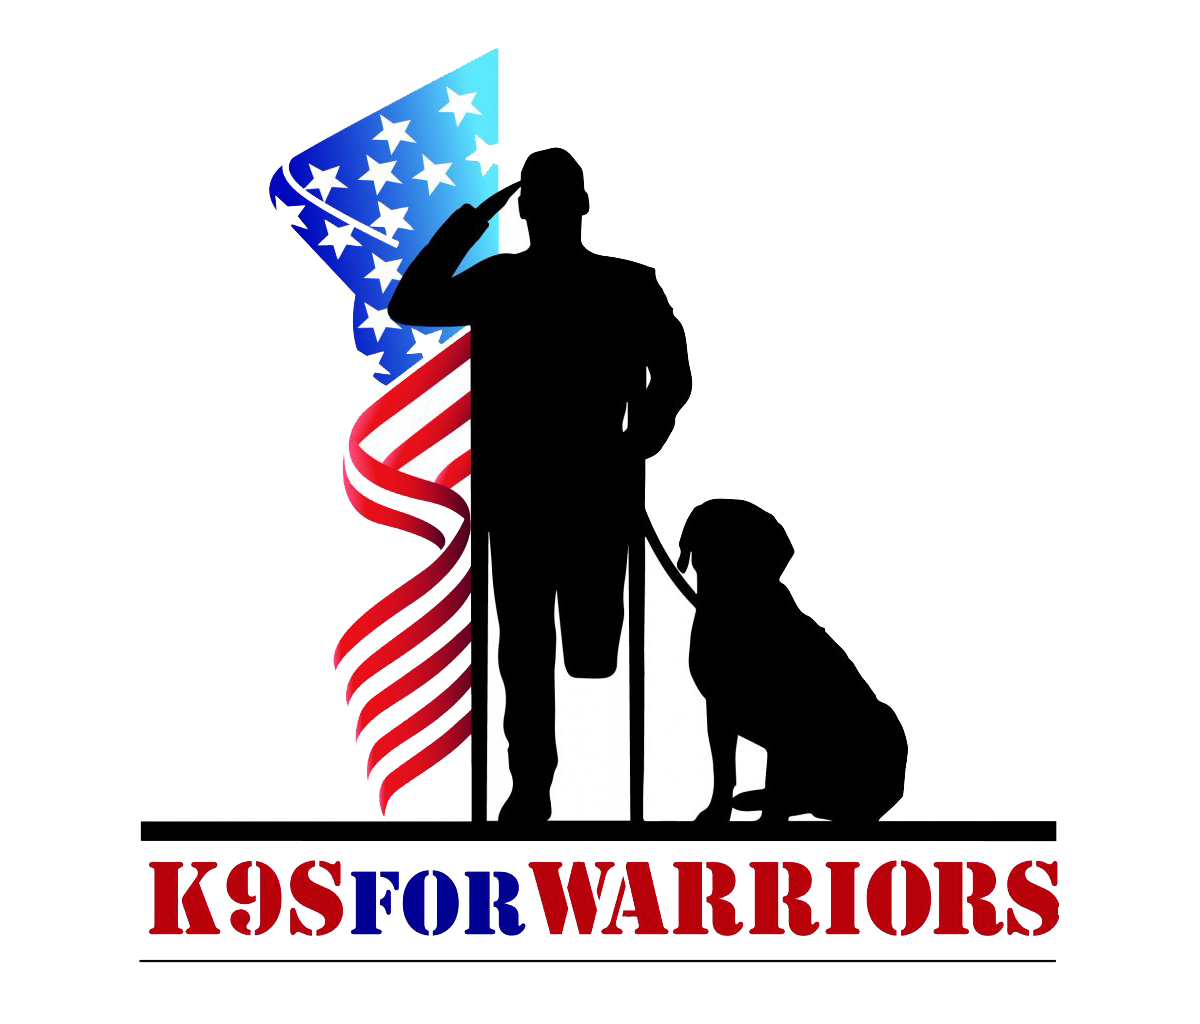 k9-for-warriors-921x1024